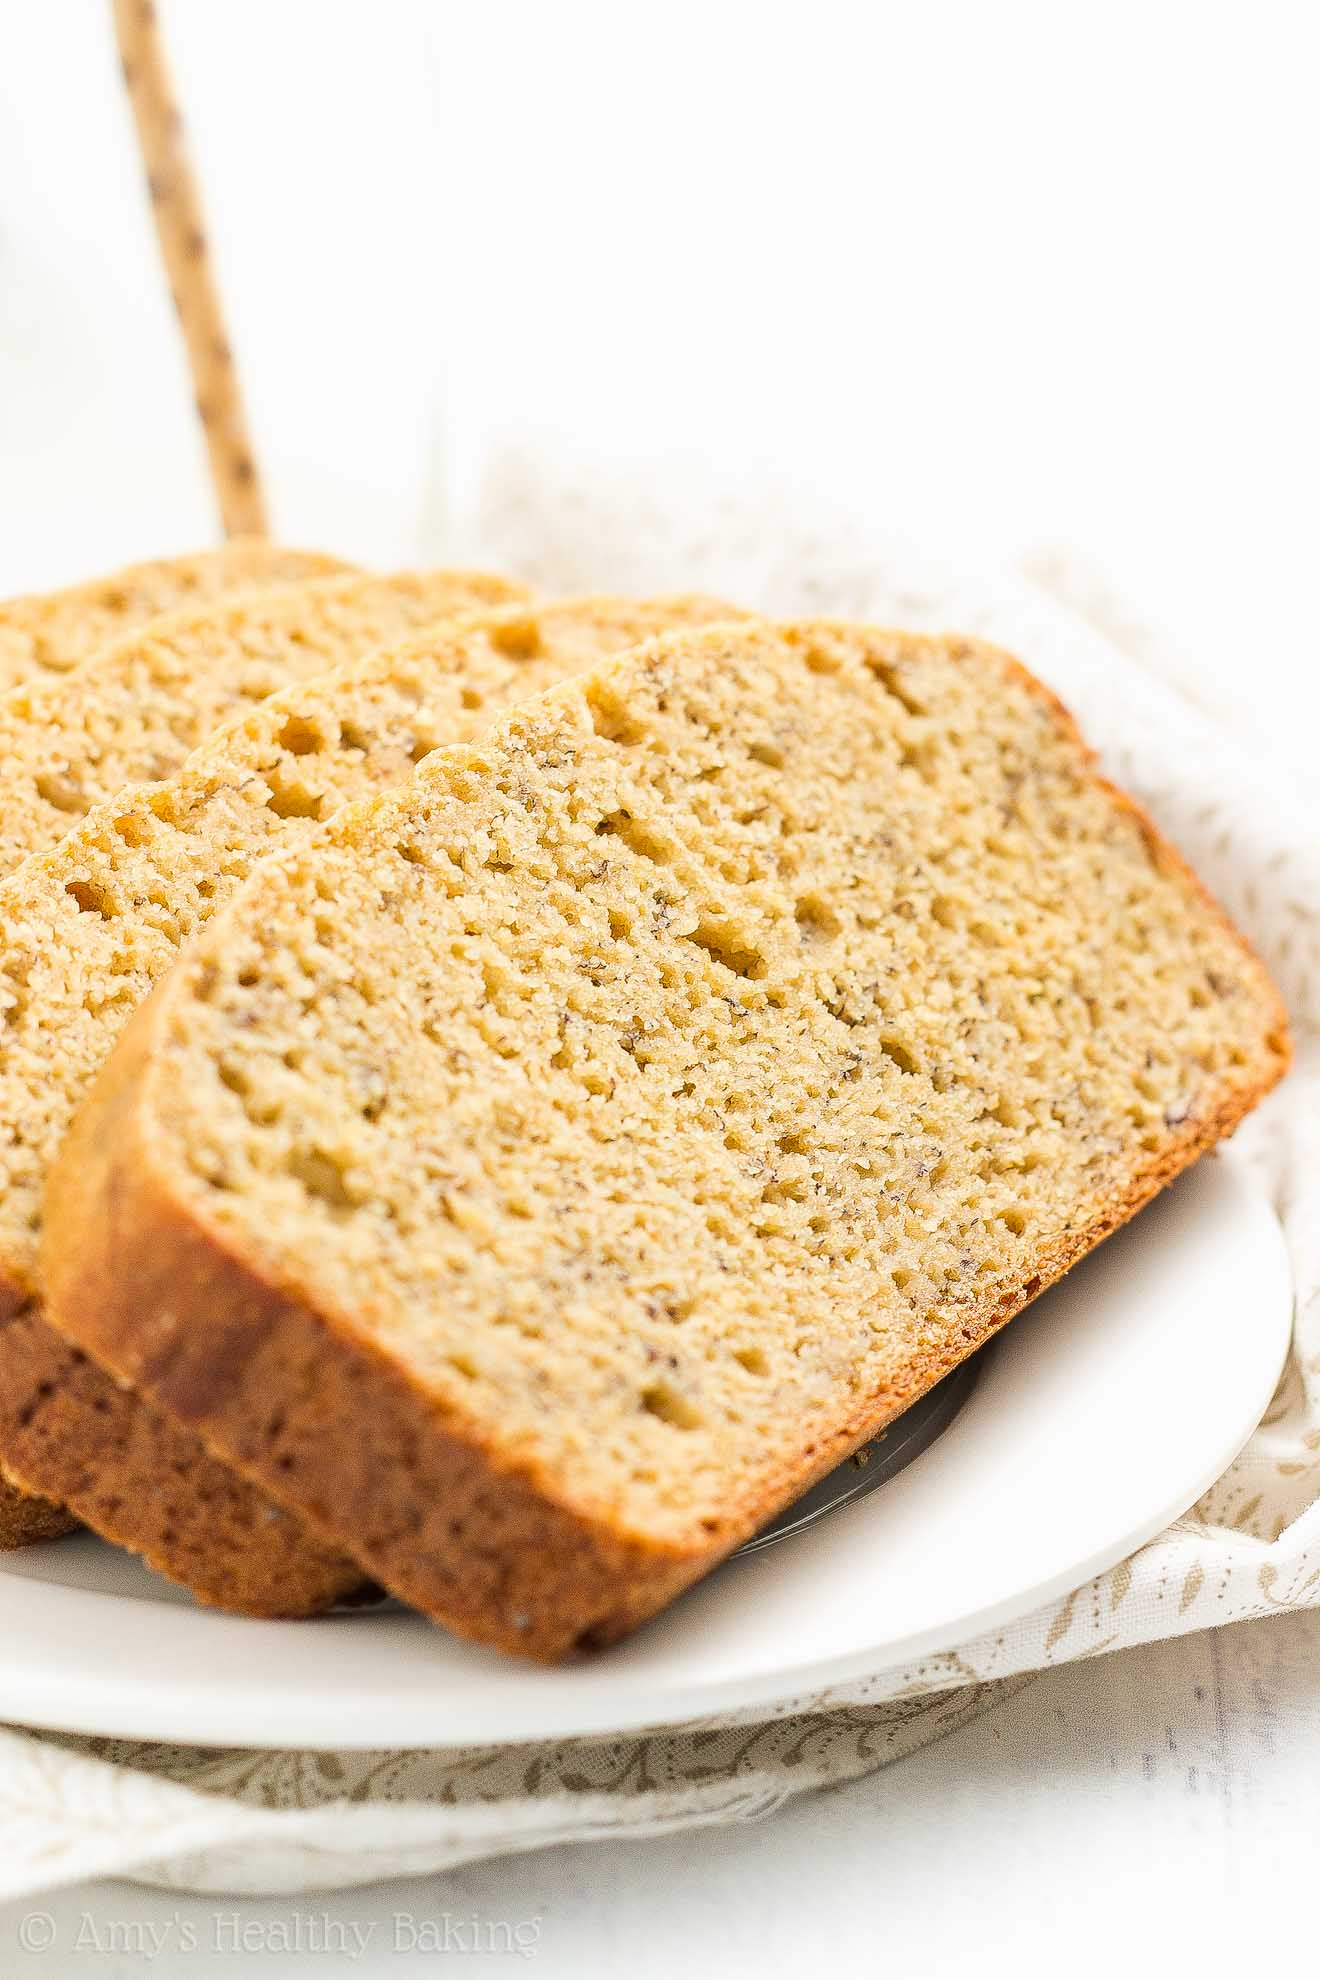 The Best Healthy Gluten-Free Banana Bread Recipe